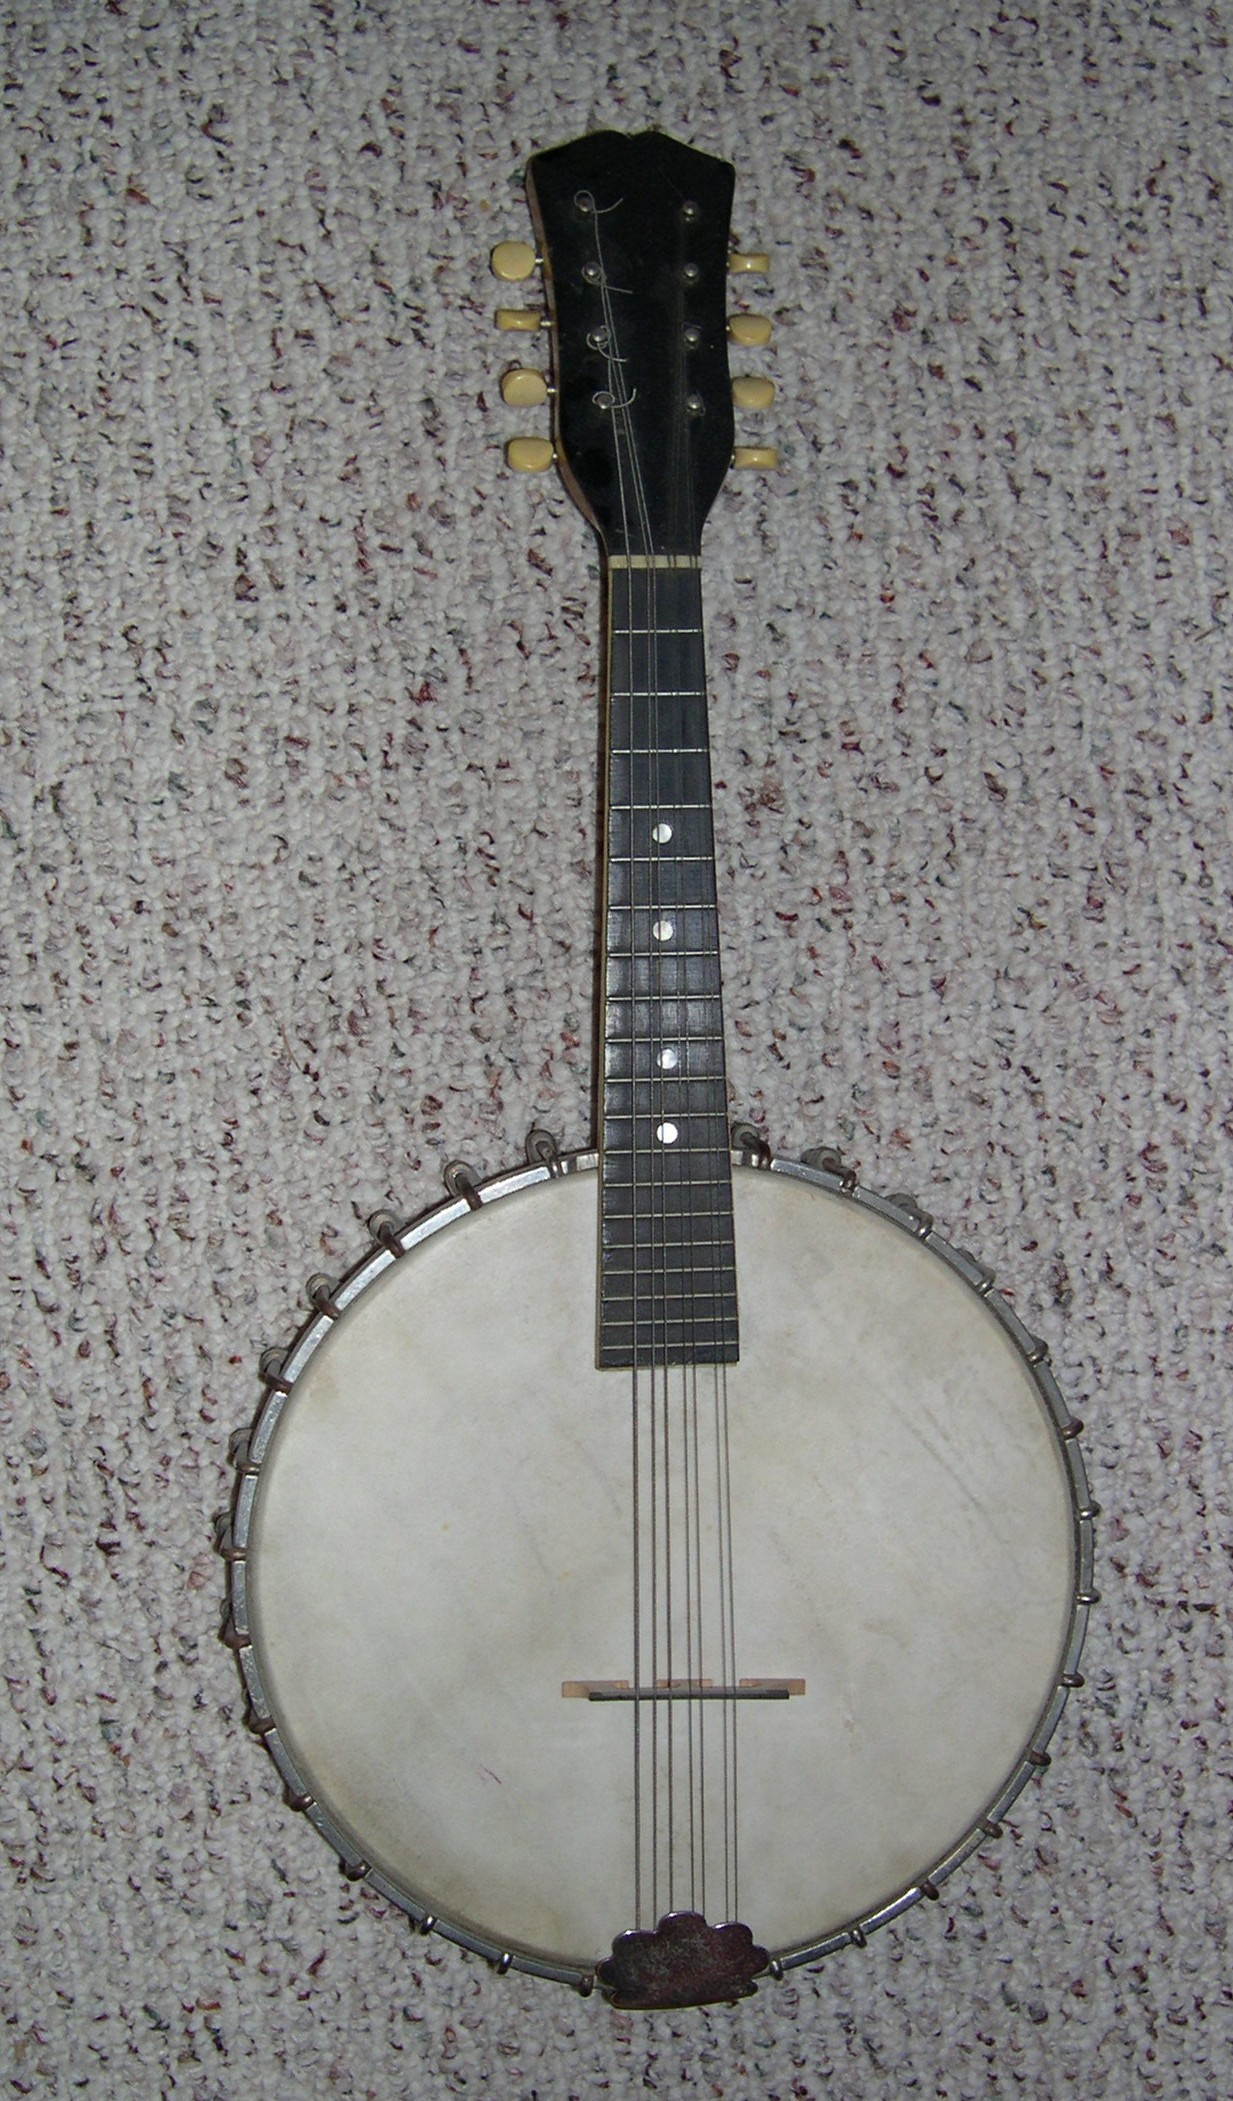 1921 Vega Little Wonder Banjo Mandolin